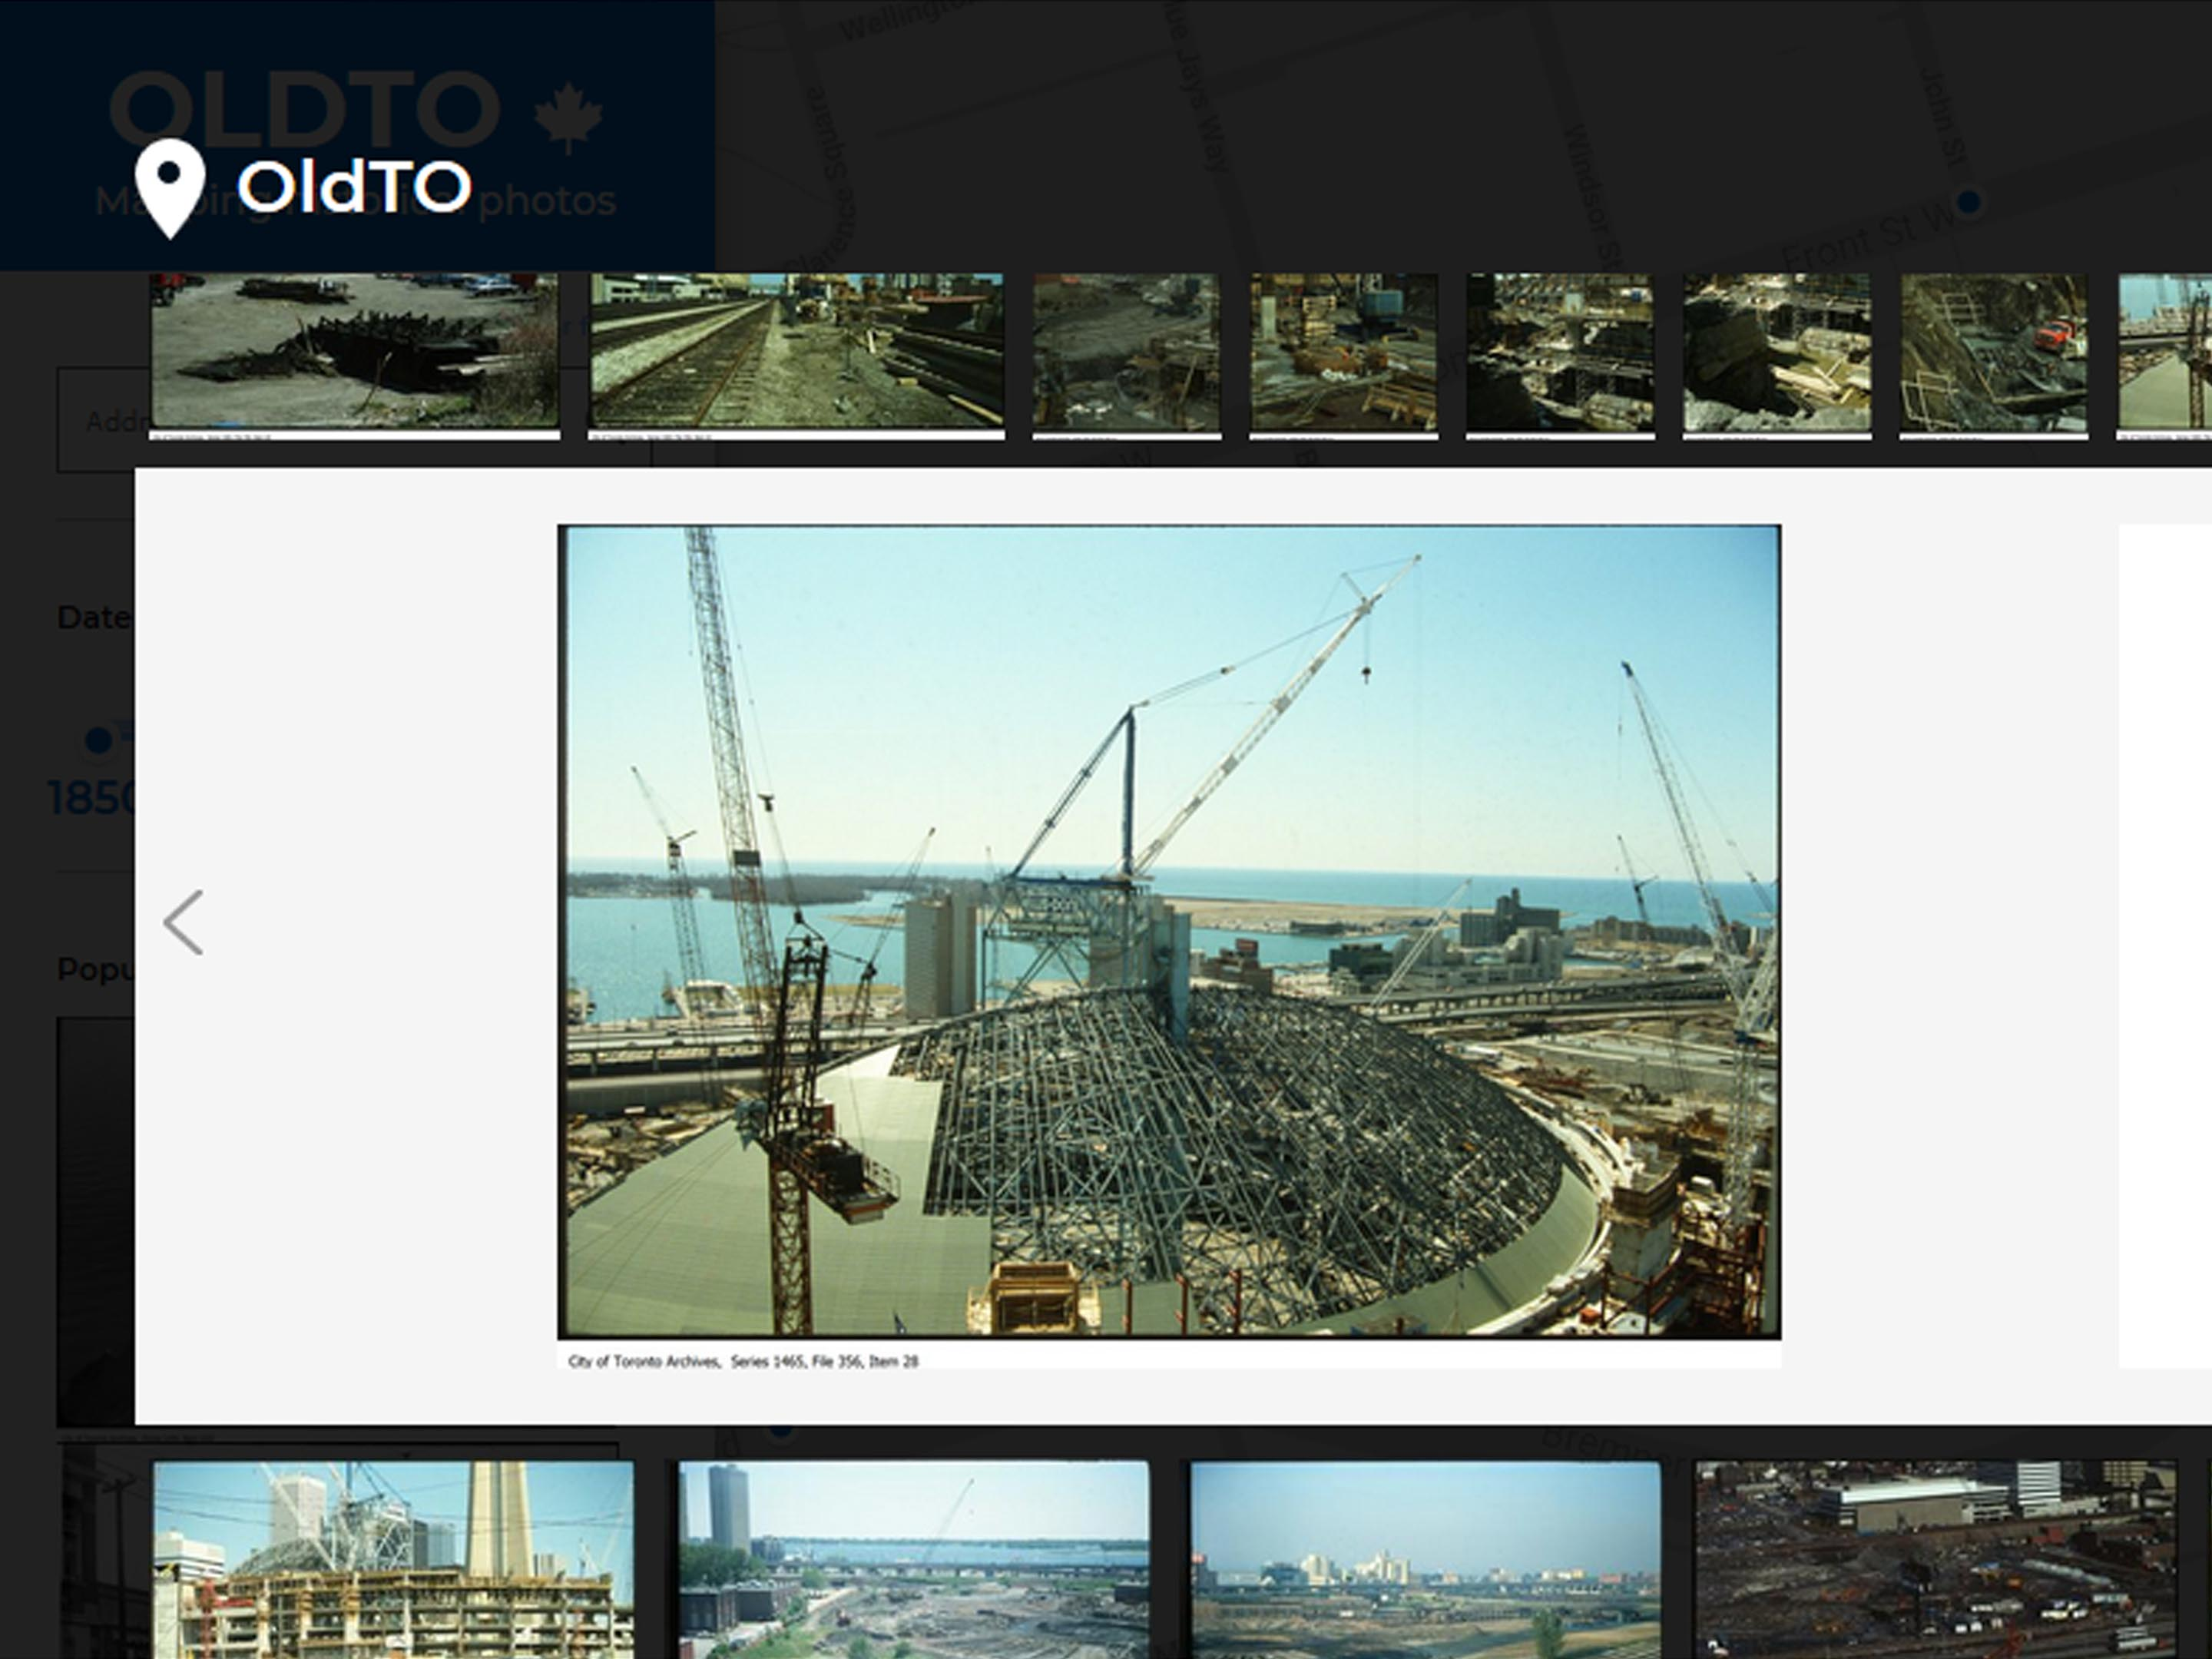 Screenshot of Skydome construction from Old Toronto collection